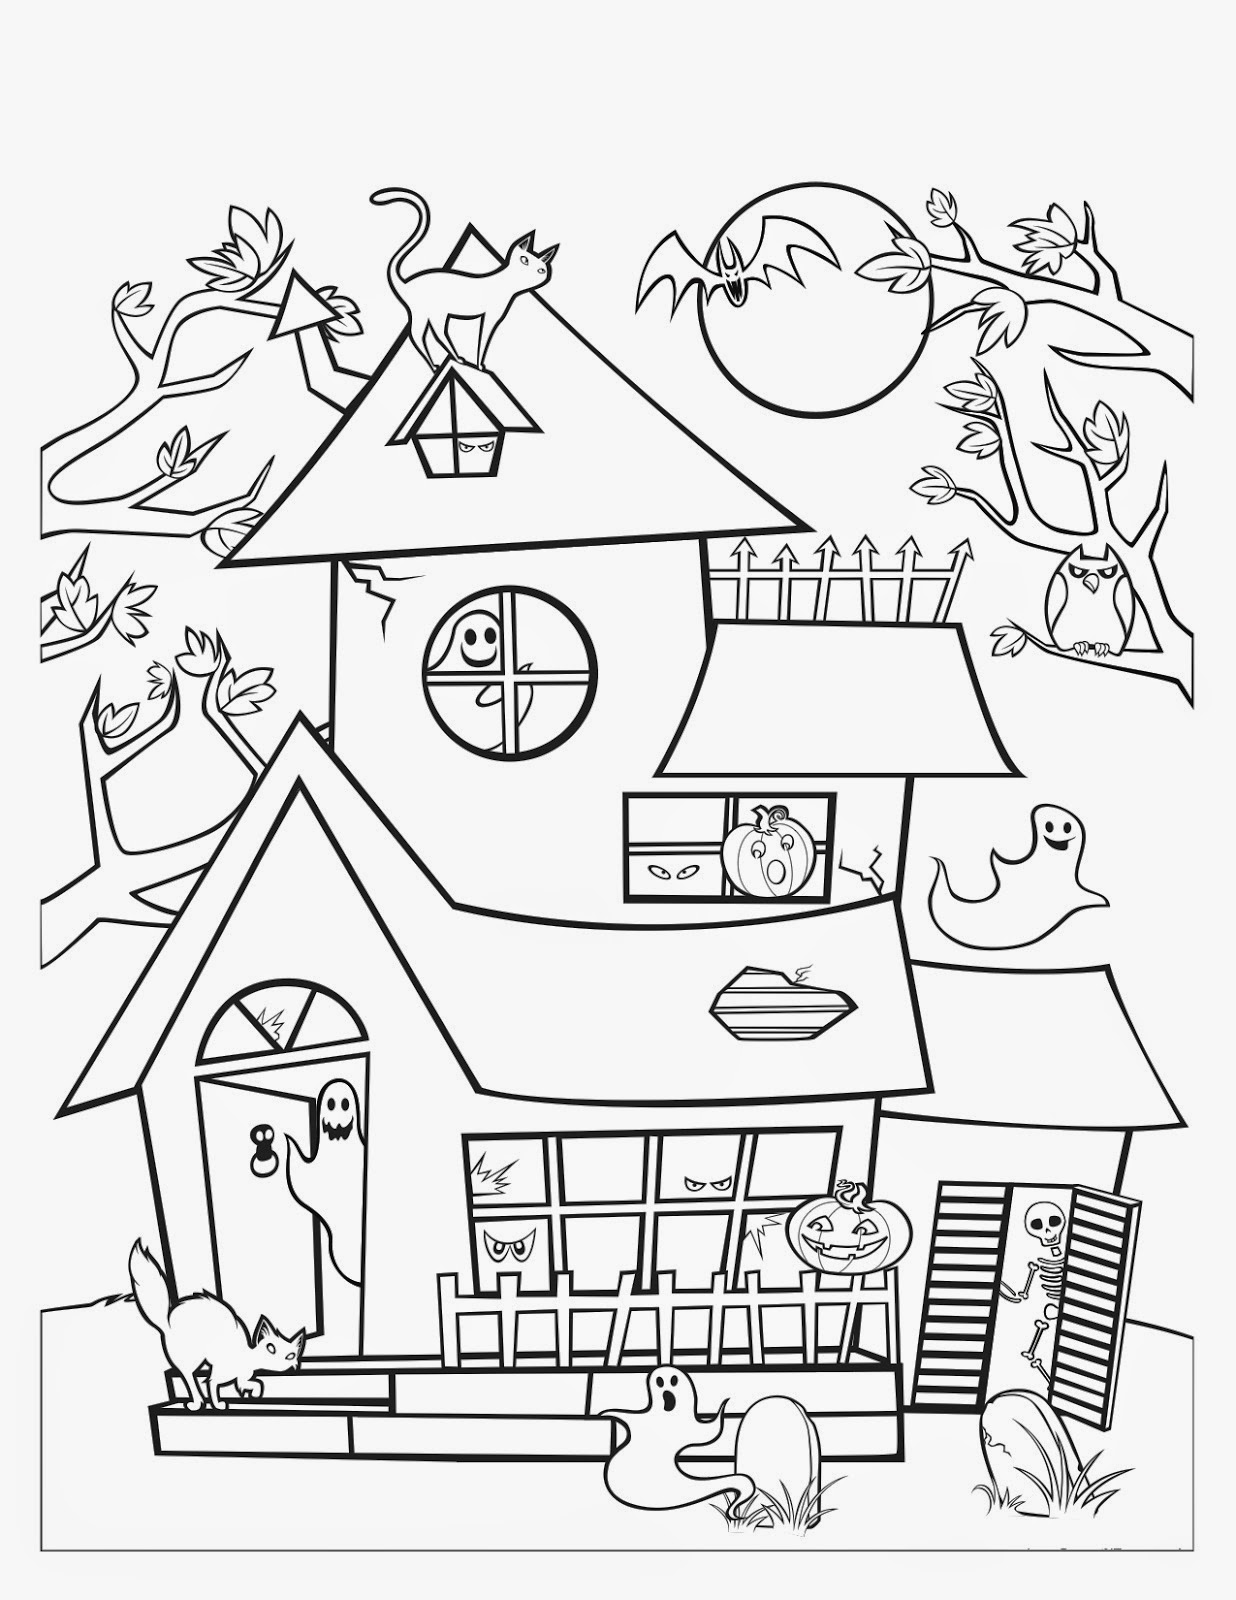 coloring pages haunted house - photo#30